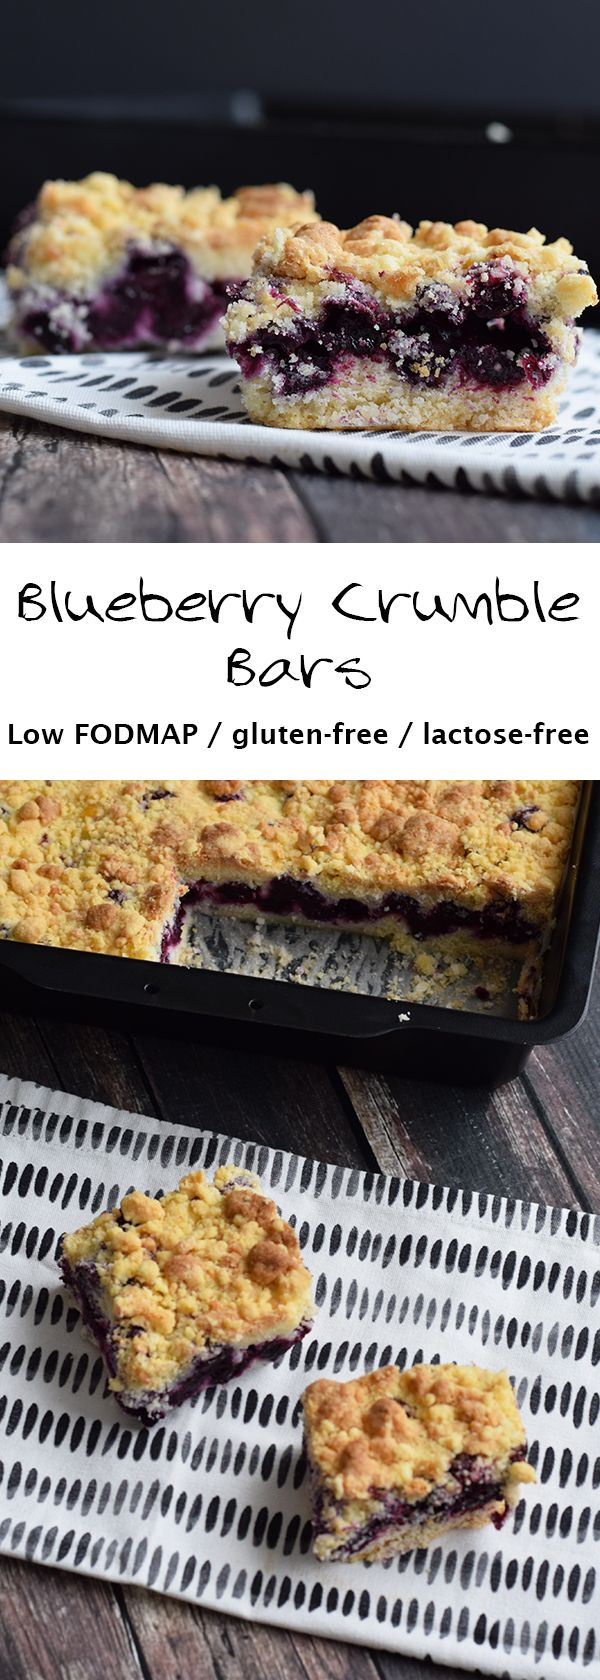 The most amazing blueberry crumble bars. Low FODMAP, gluten-free and lactose-free.